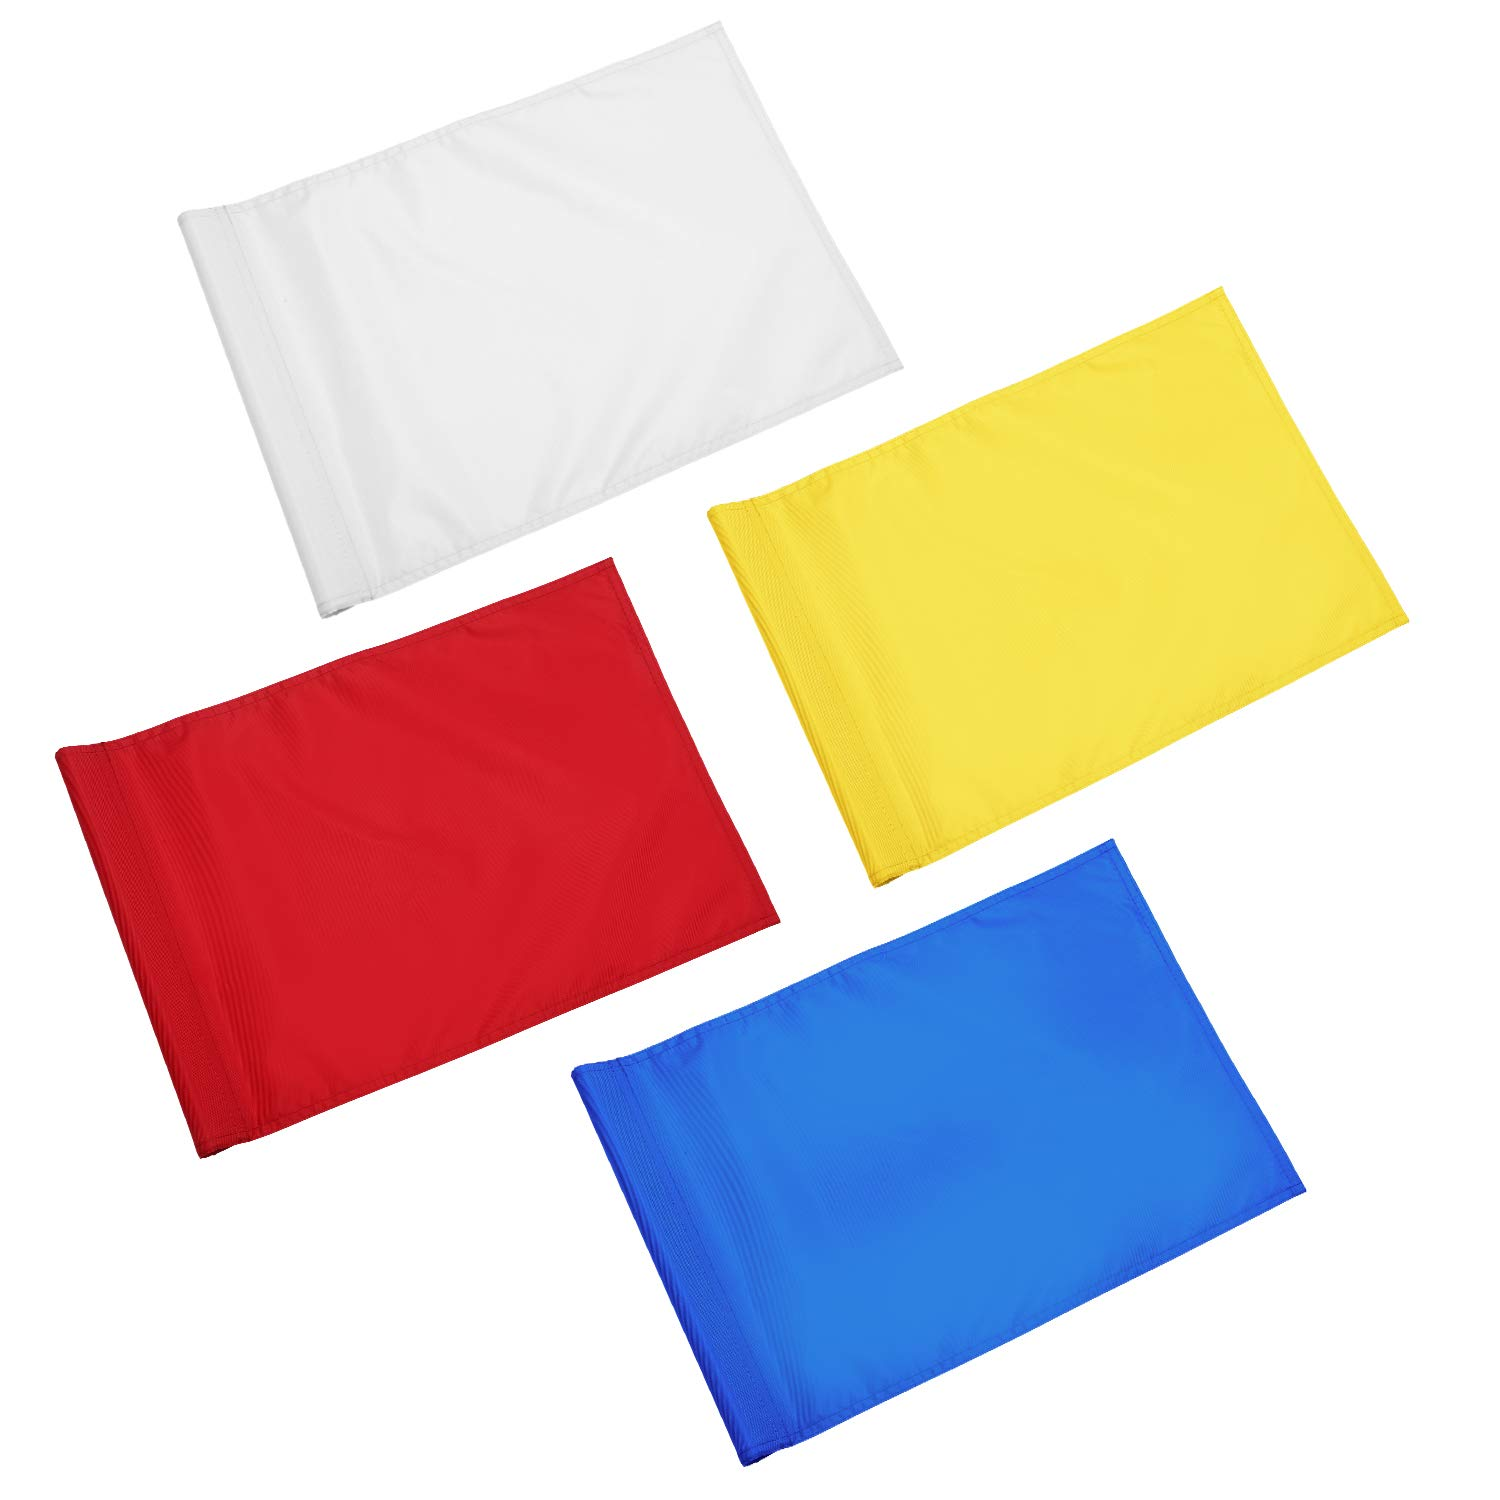 KINGTOP Solid Golf Flag with Plastic Insert, Putting Green Flags for Yard, Indoor/Outdoor, Garden Pin Flags, 420D Premium Nylon Flag, 13'' L x 20'' H, Red/White/Yellow/Blue by KINGTOP